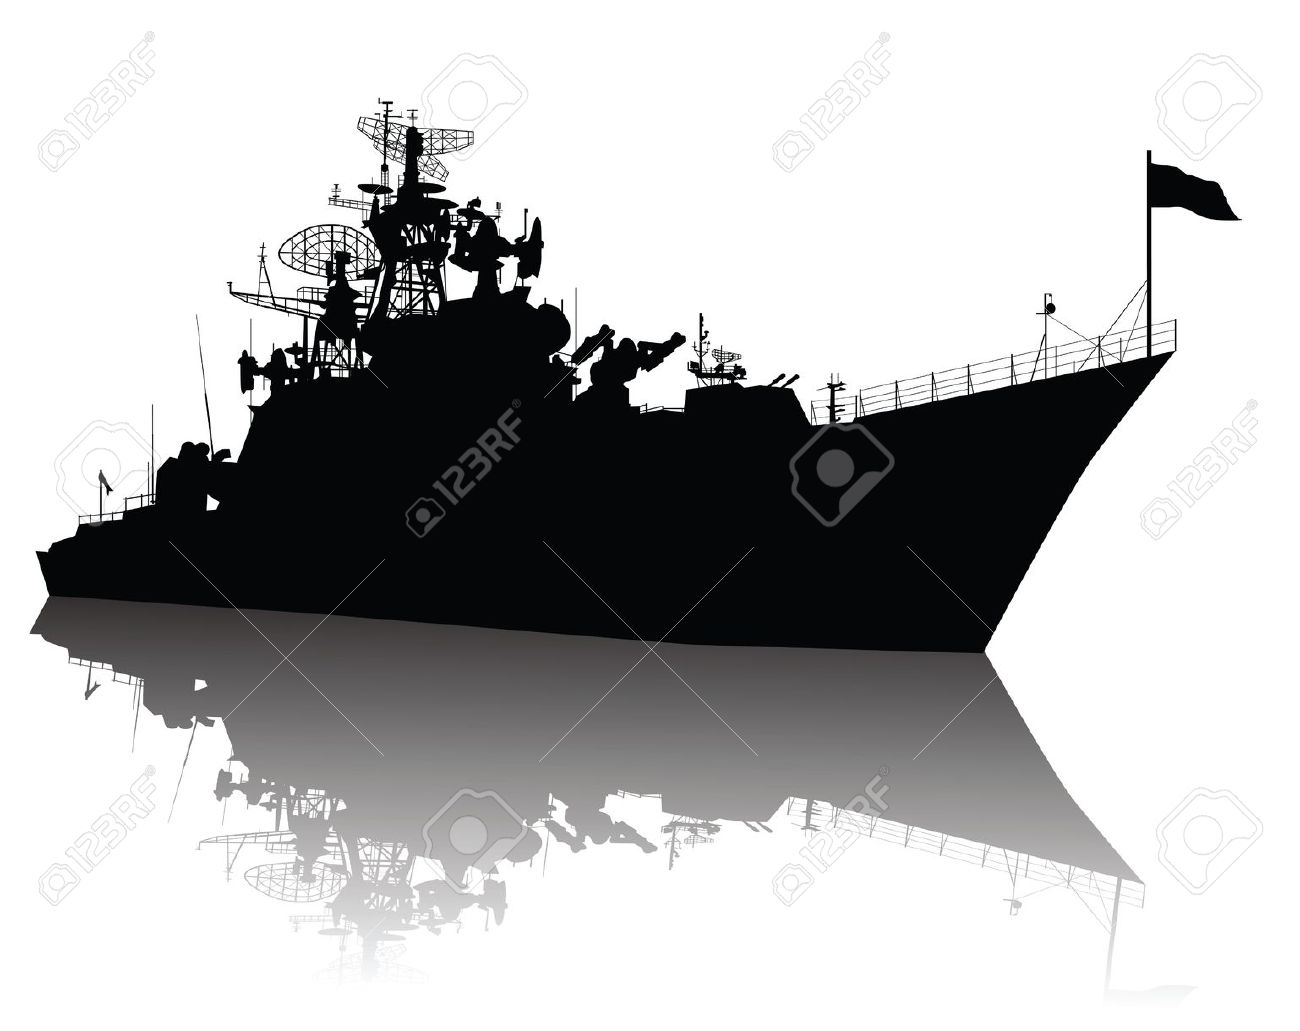 Indian navy ships clipart.